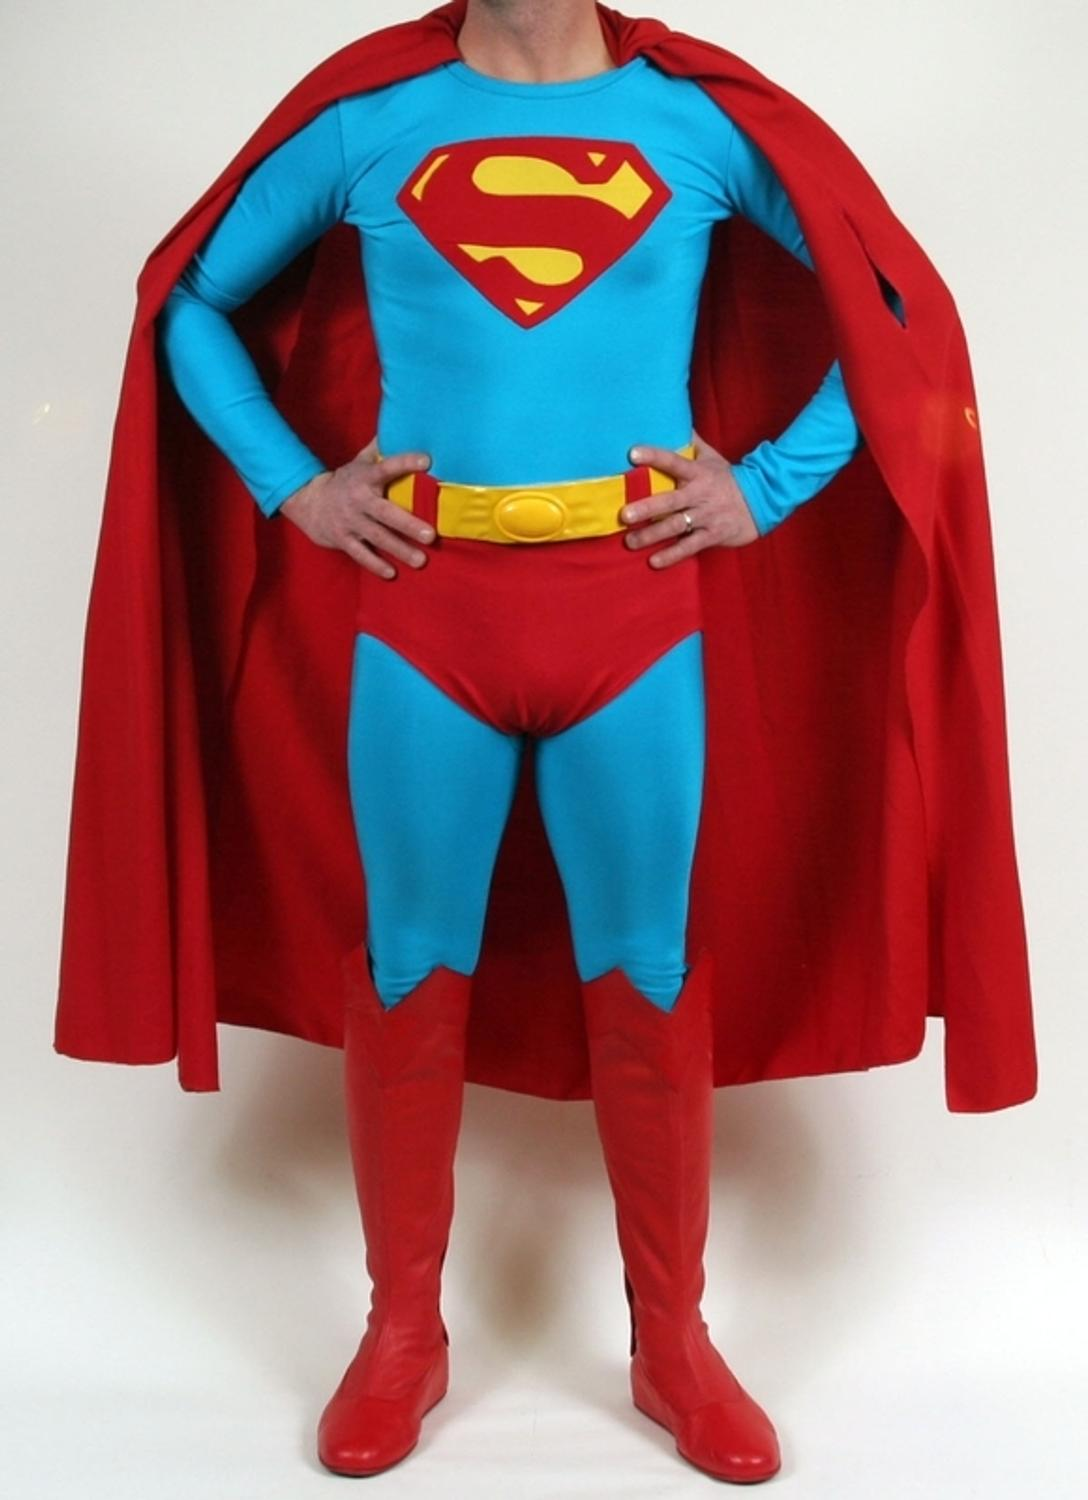 Museum Collection Of Superhero Memorabilia To Be Sold At